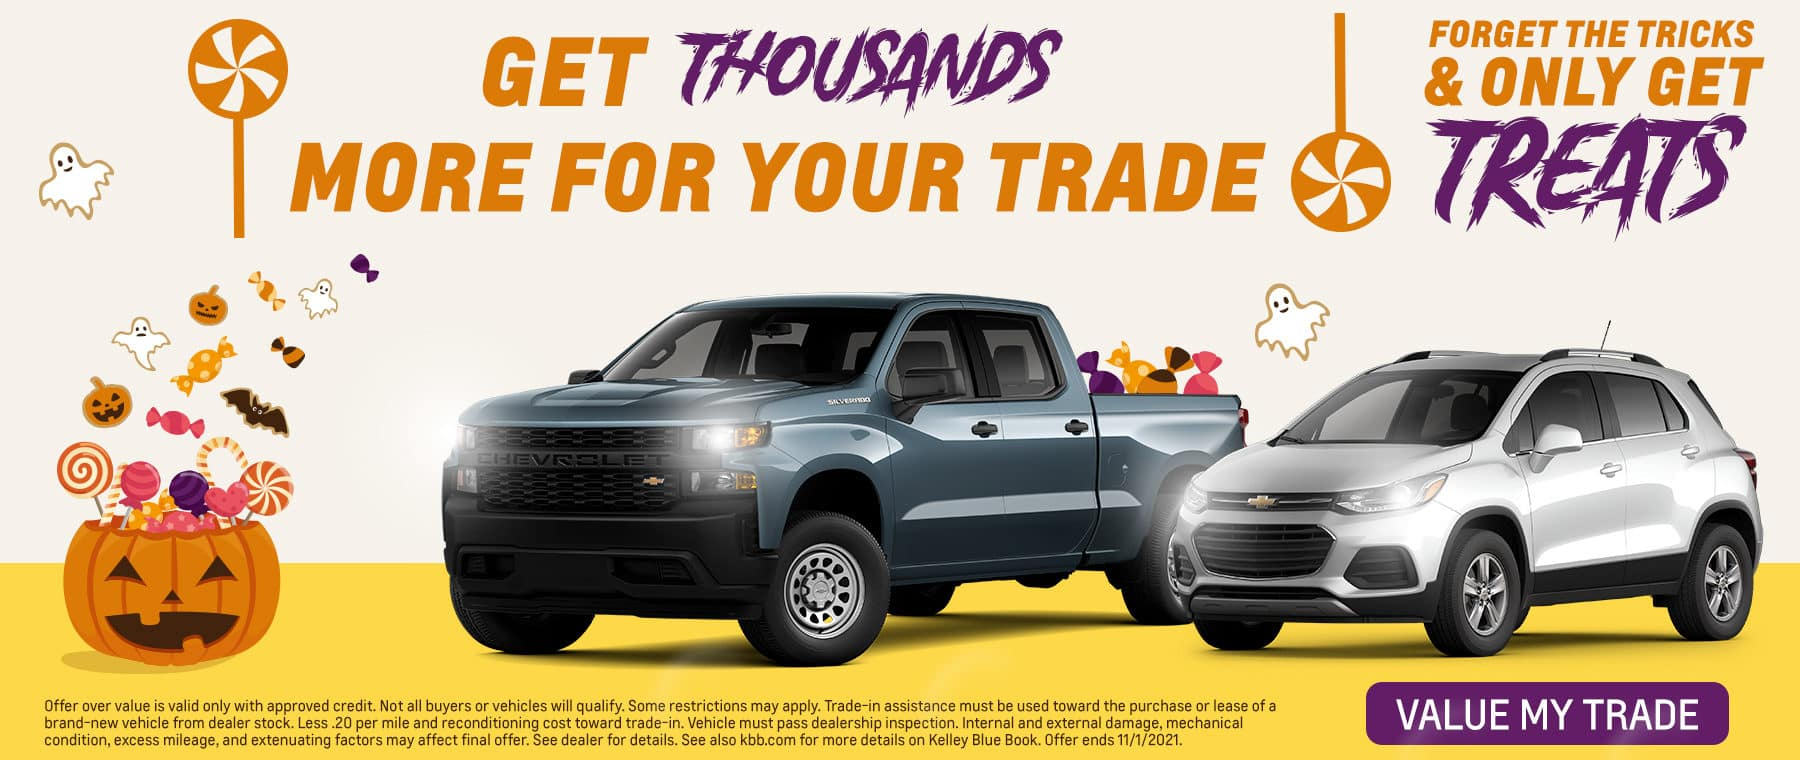 Get Thousands More For Your Trade   Forget The Tricks & Only Get Treats